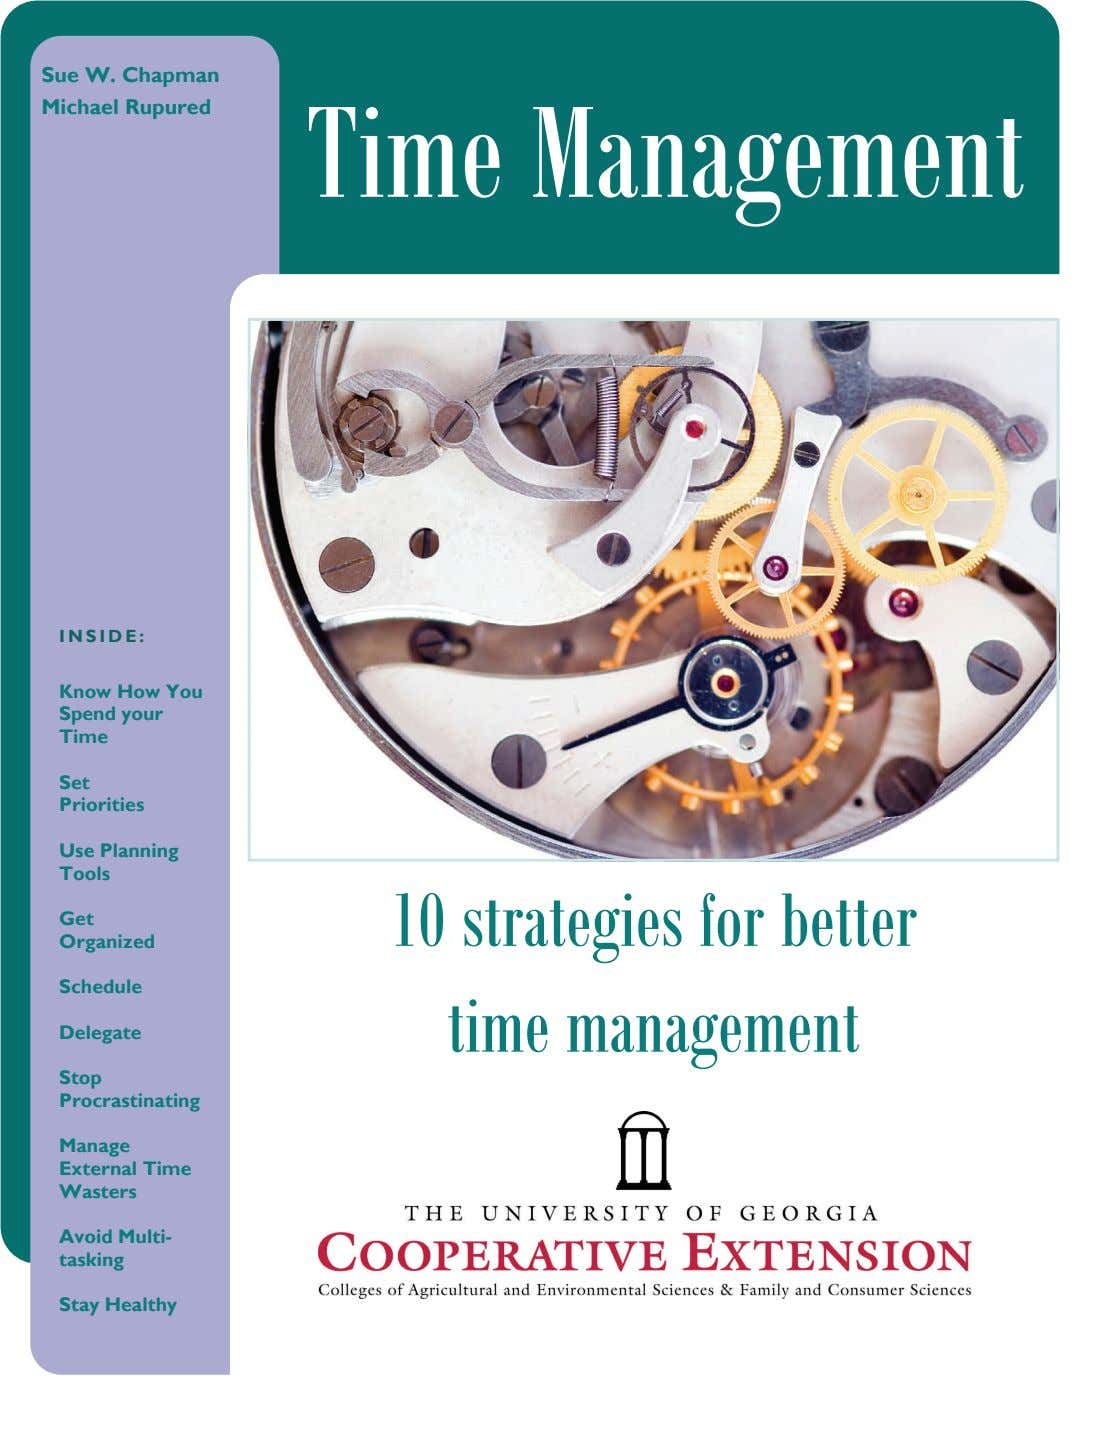 Sue W. Chapman Michael Rupured Time Management INSIDE: Know How You Spend your Time Caption describing